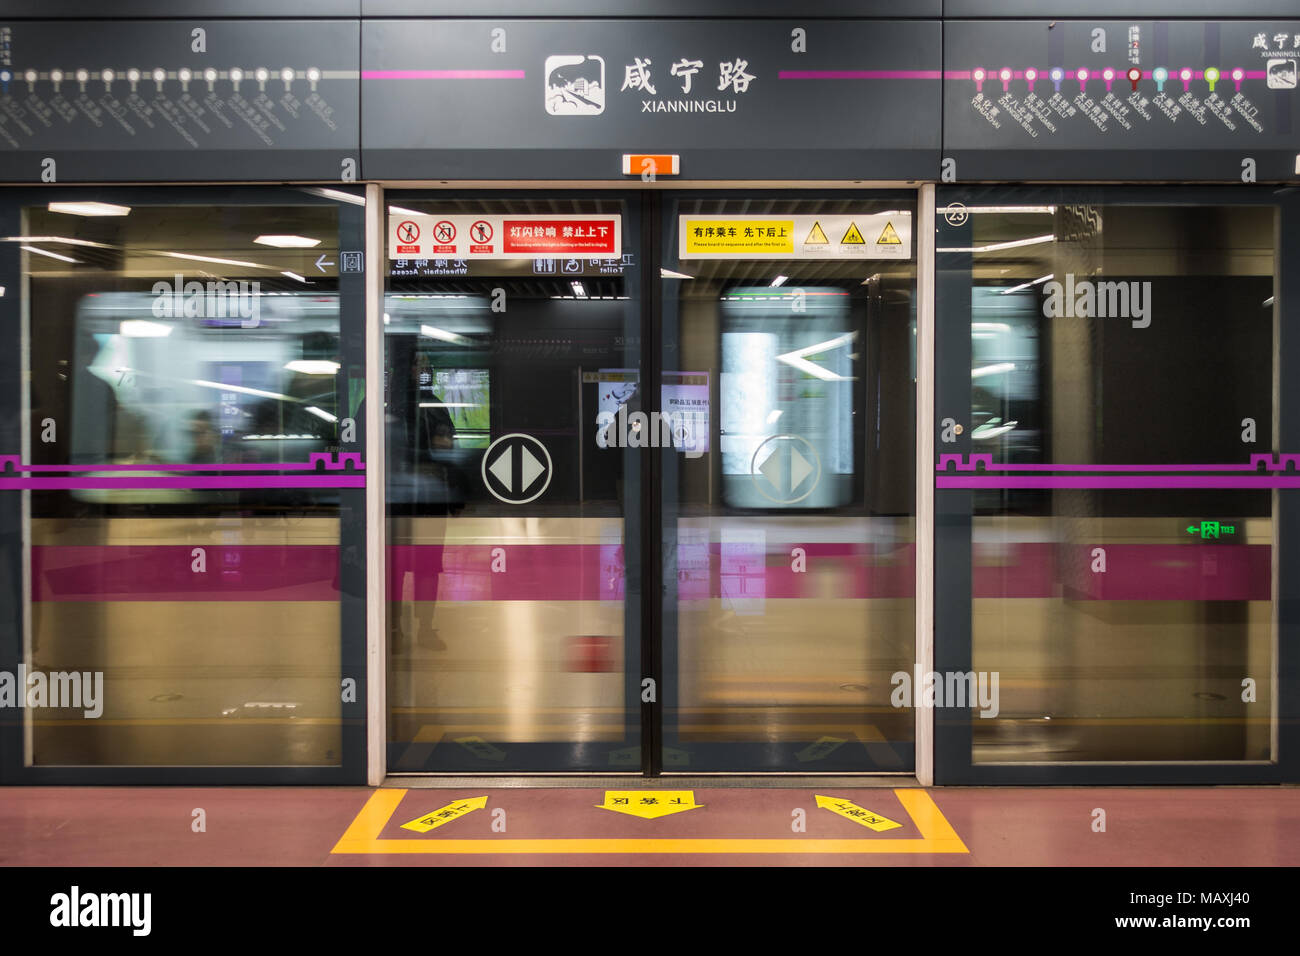 Xian Ning Lu Station with Passing Train Closed Doors in Xi'an, China, March 2018 Stock Photo